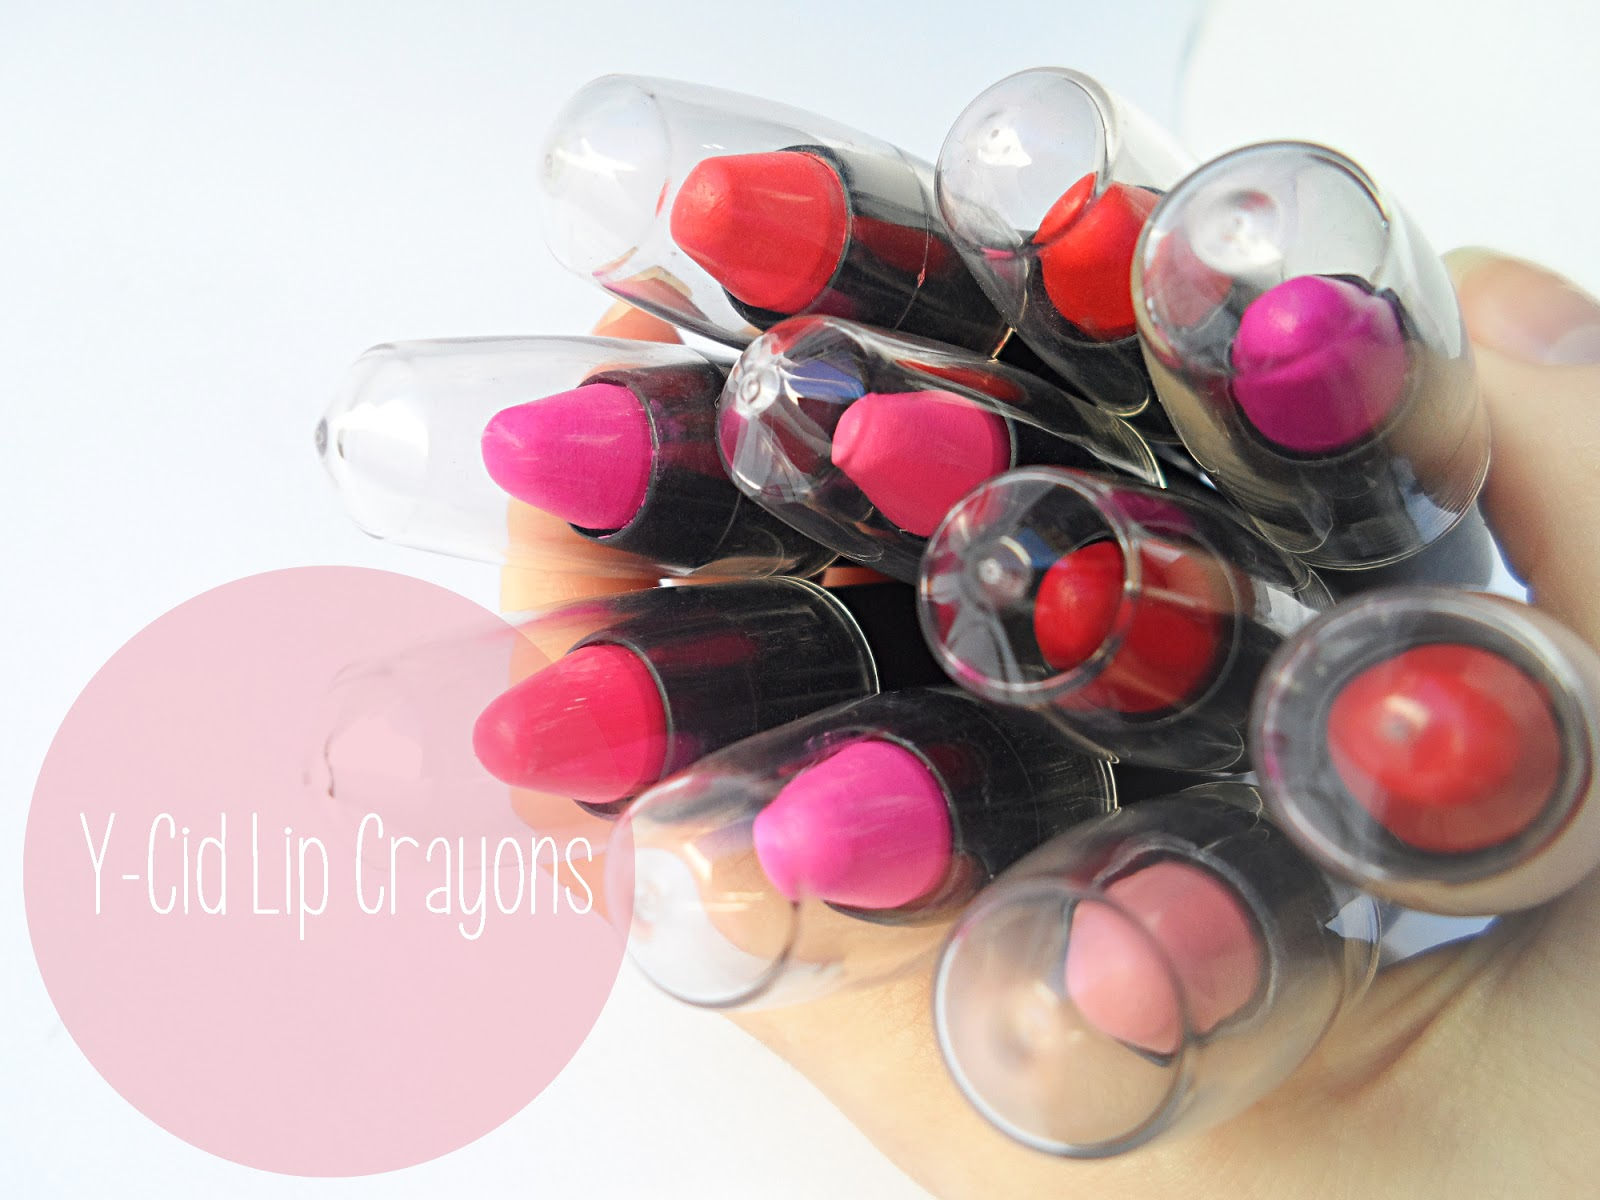 lipstick haul lip crayon haul born pretty store korean makeup review blogger swatches liz breygel